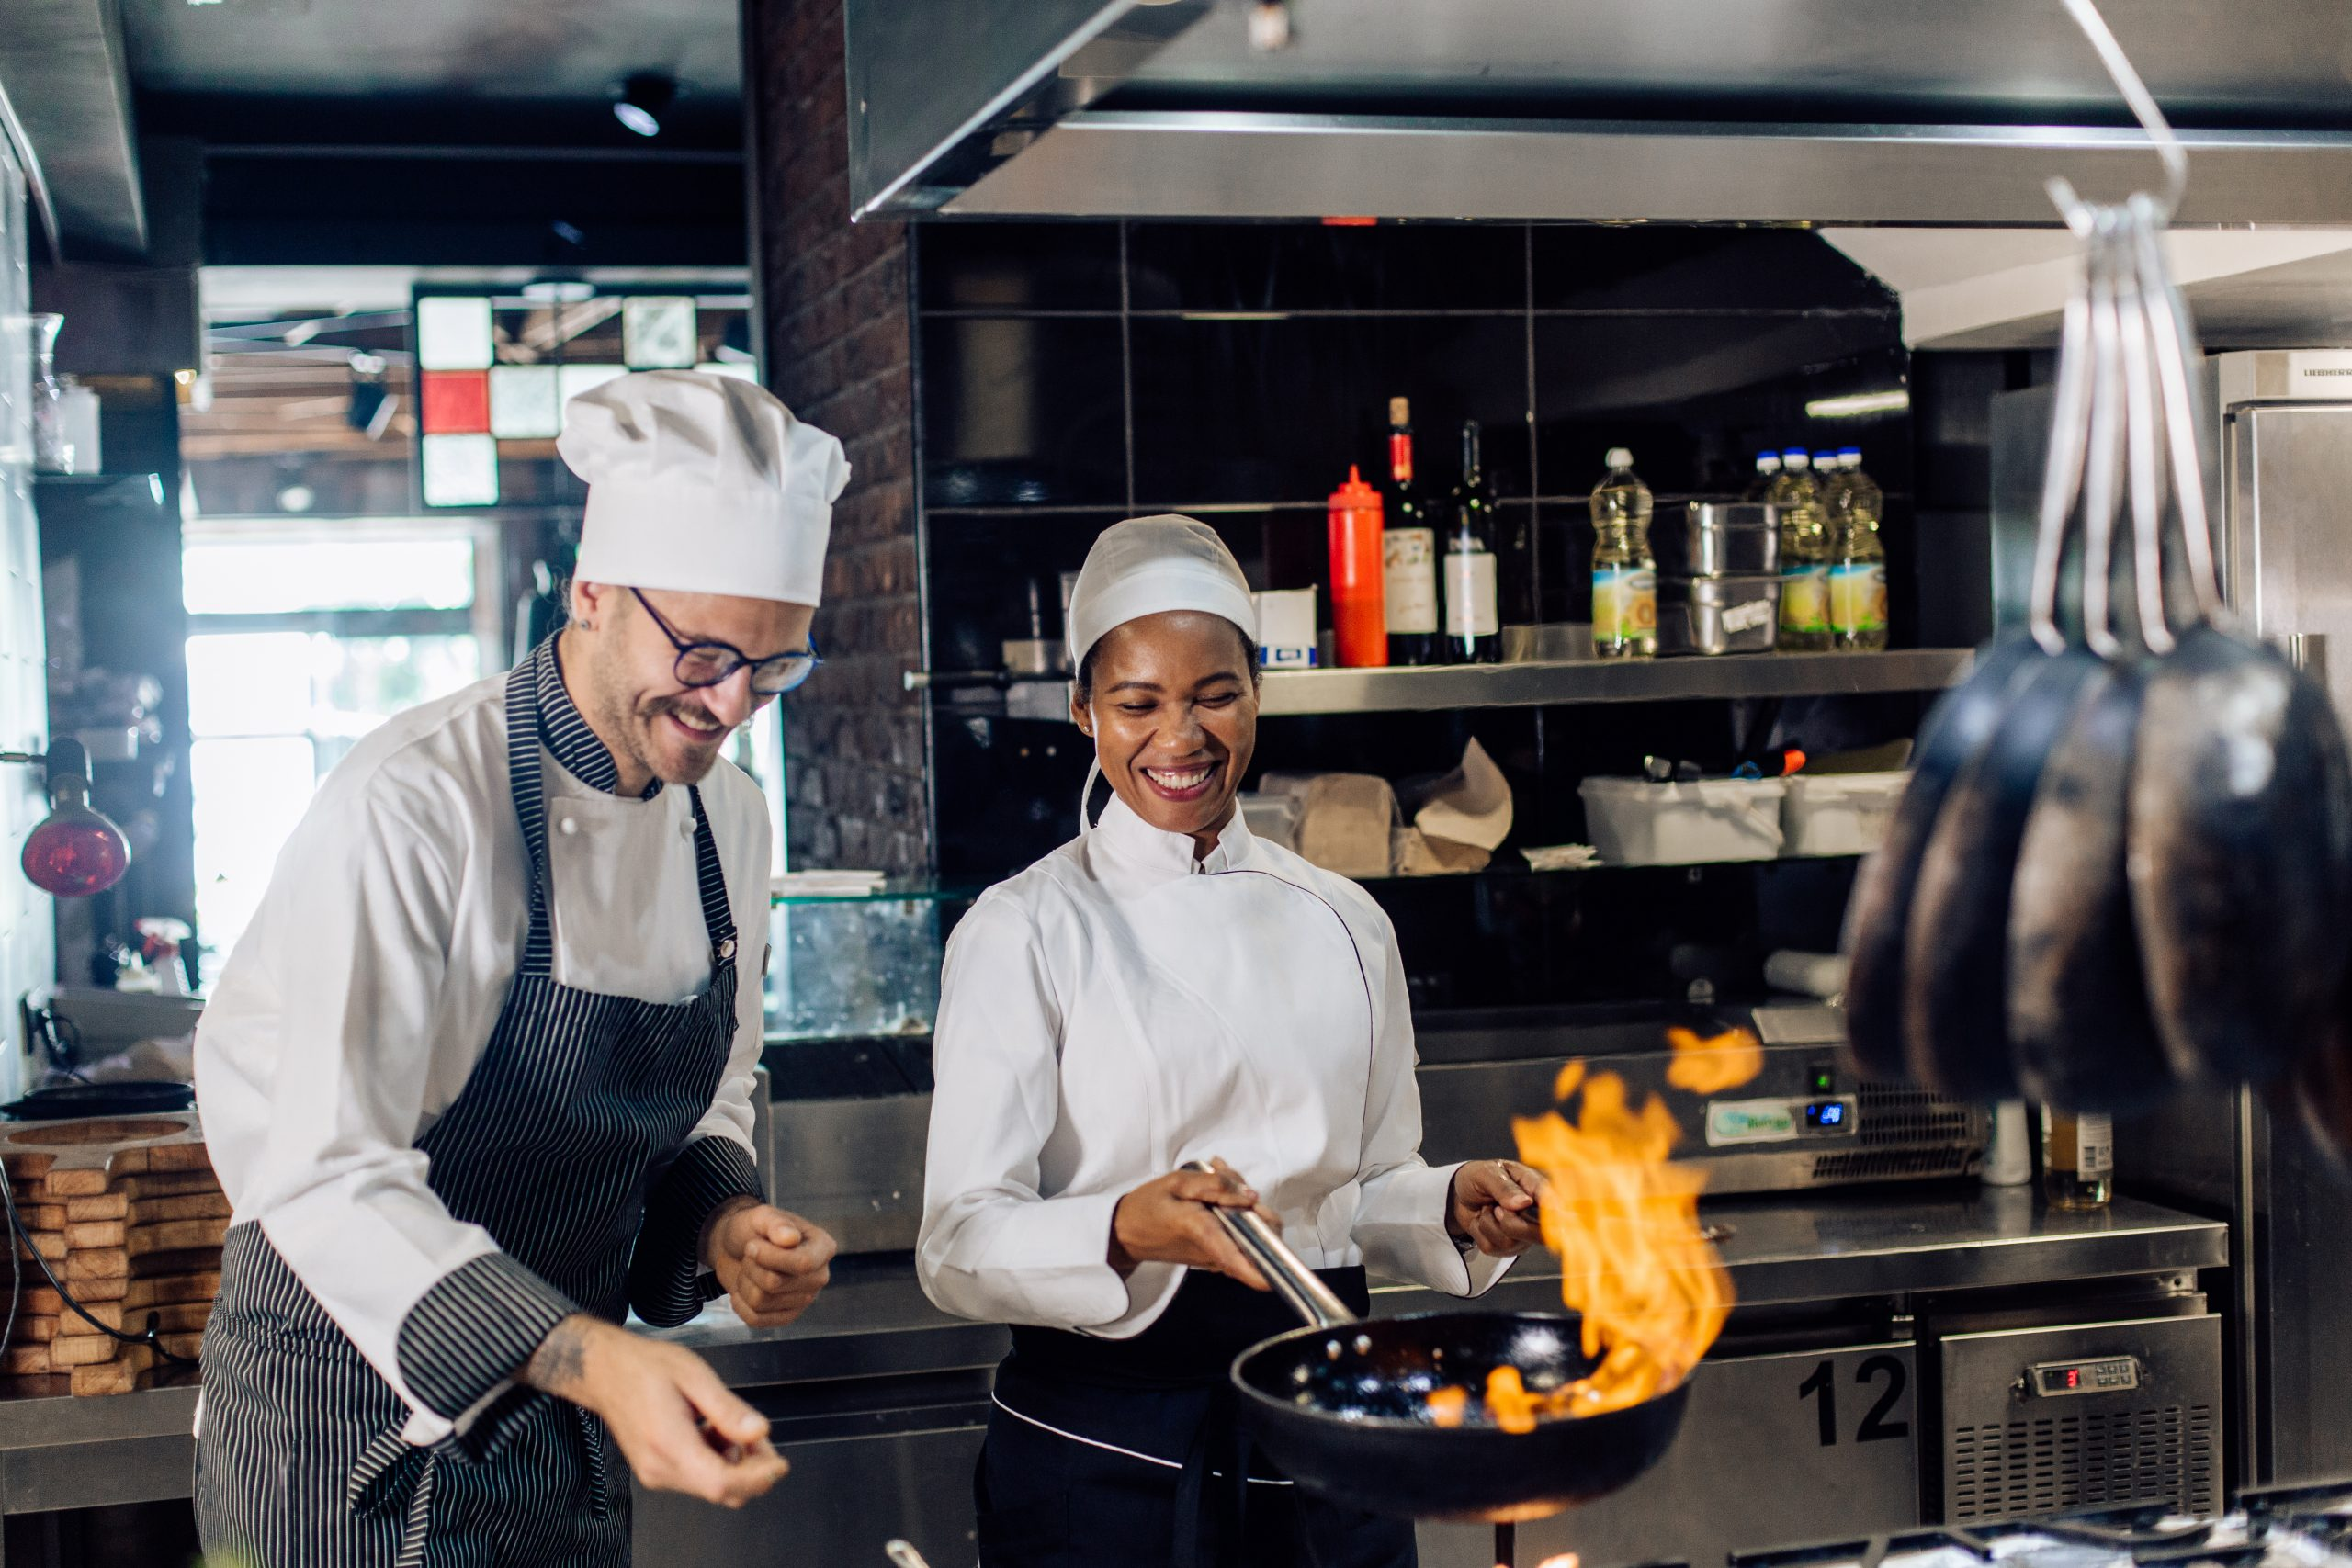 Female chef tossing a saucepan with a supervisor